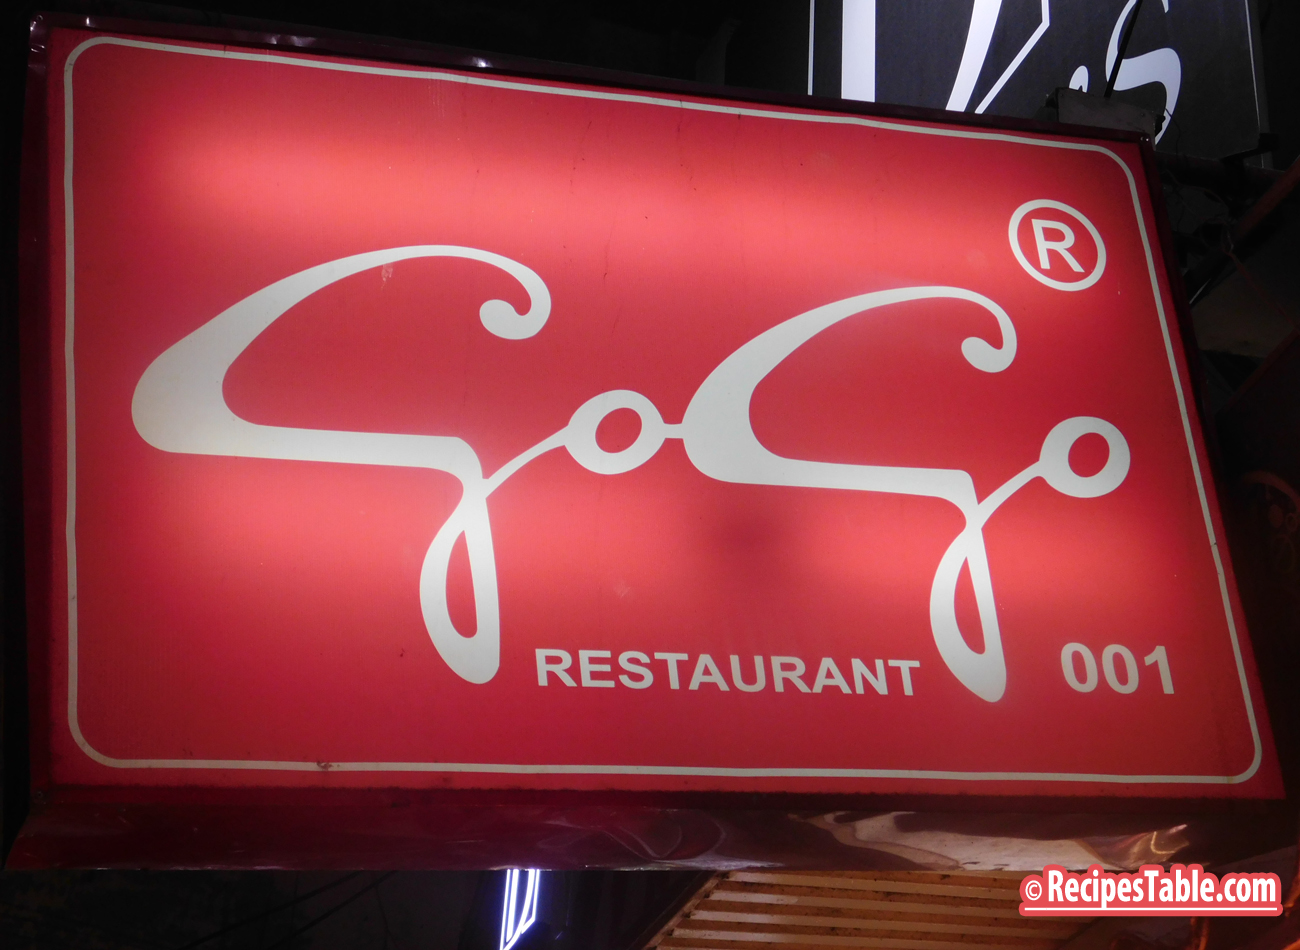 Review: Go Go Restaurant – OLD IS GOLD